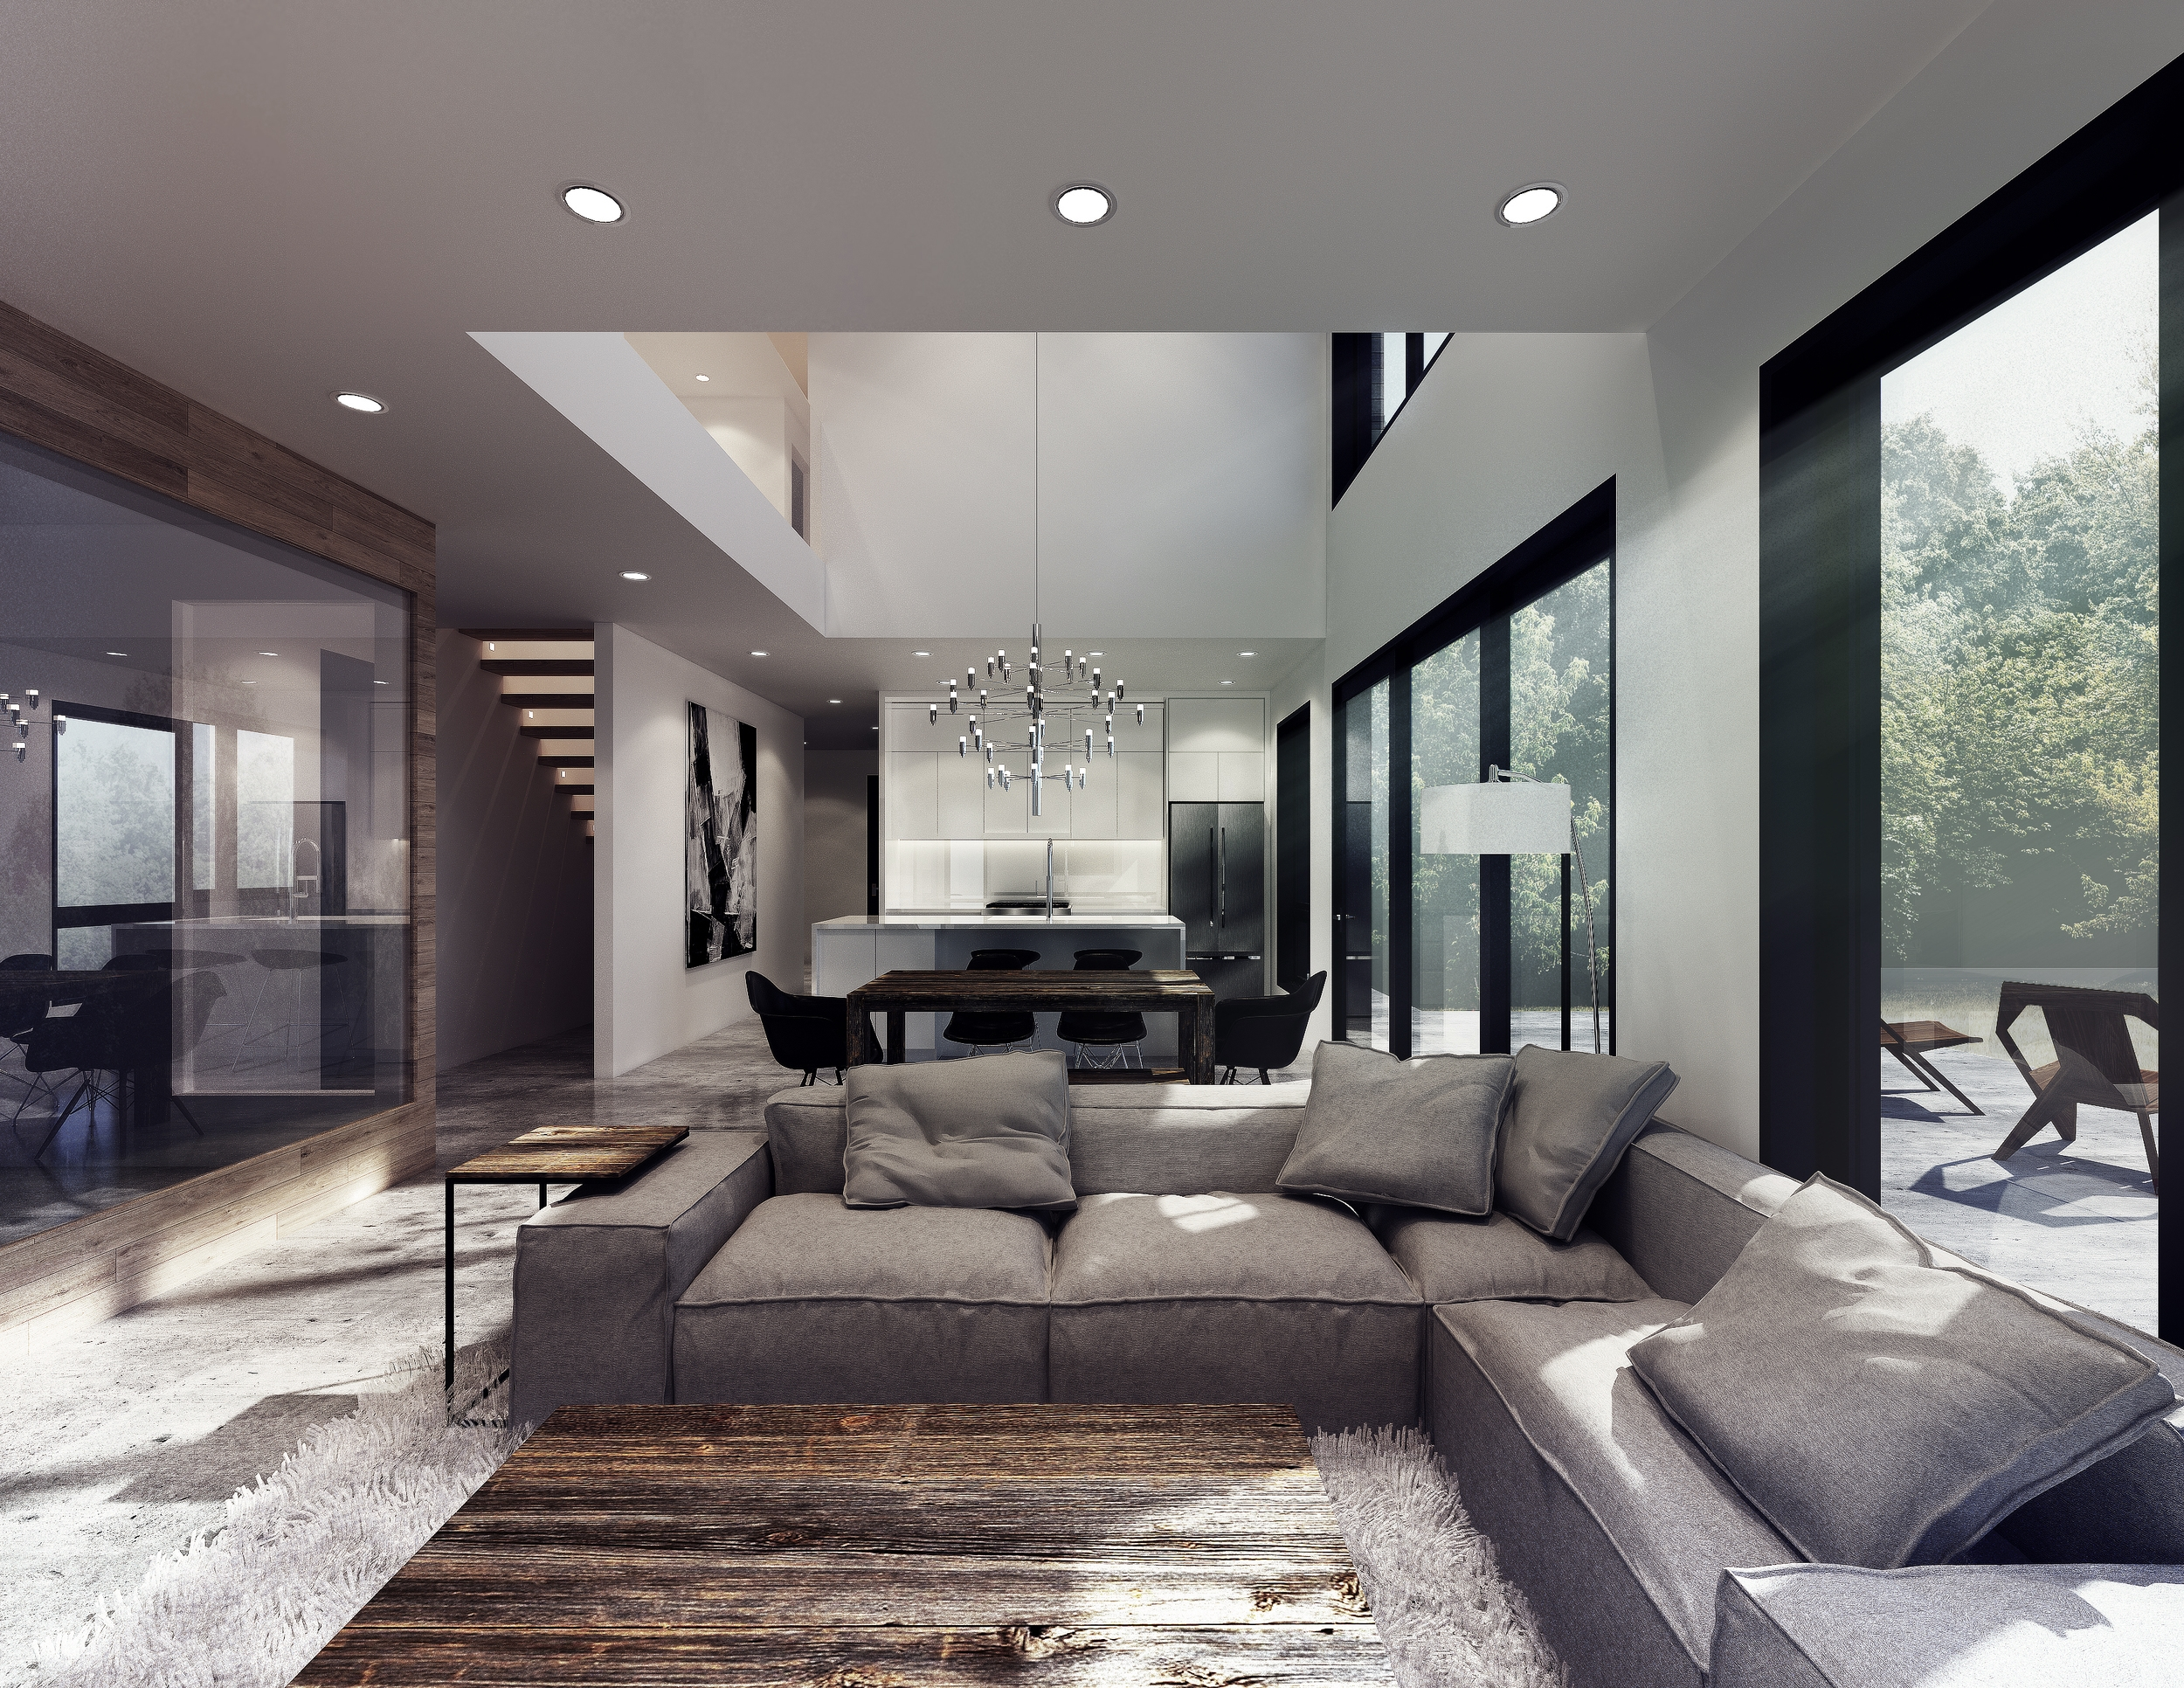 brainnustudio_design interieur_12_ajpg